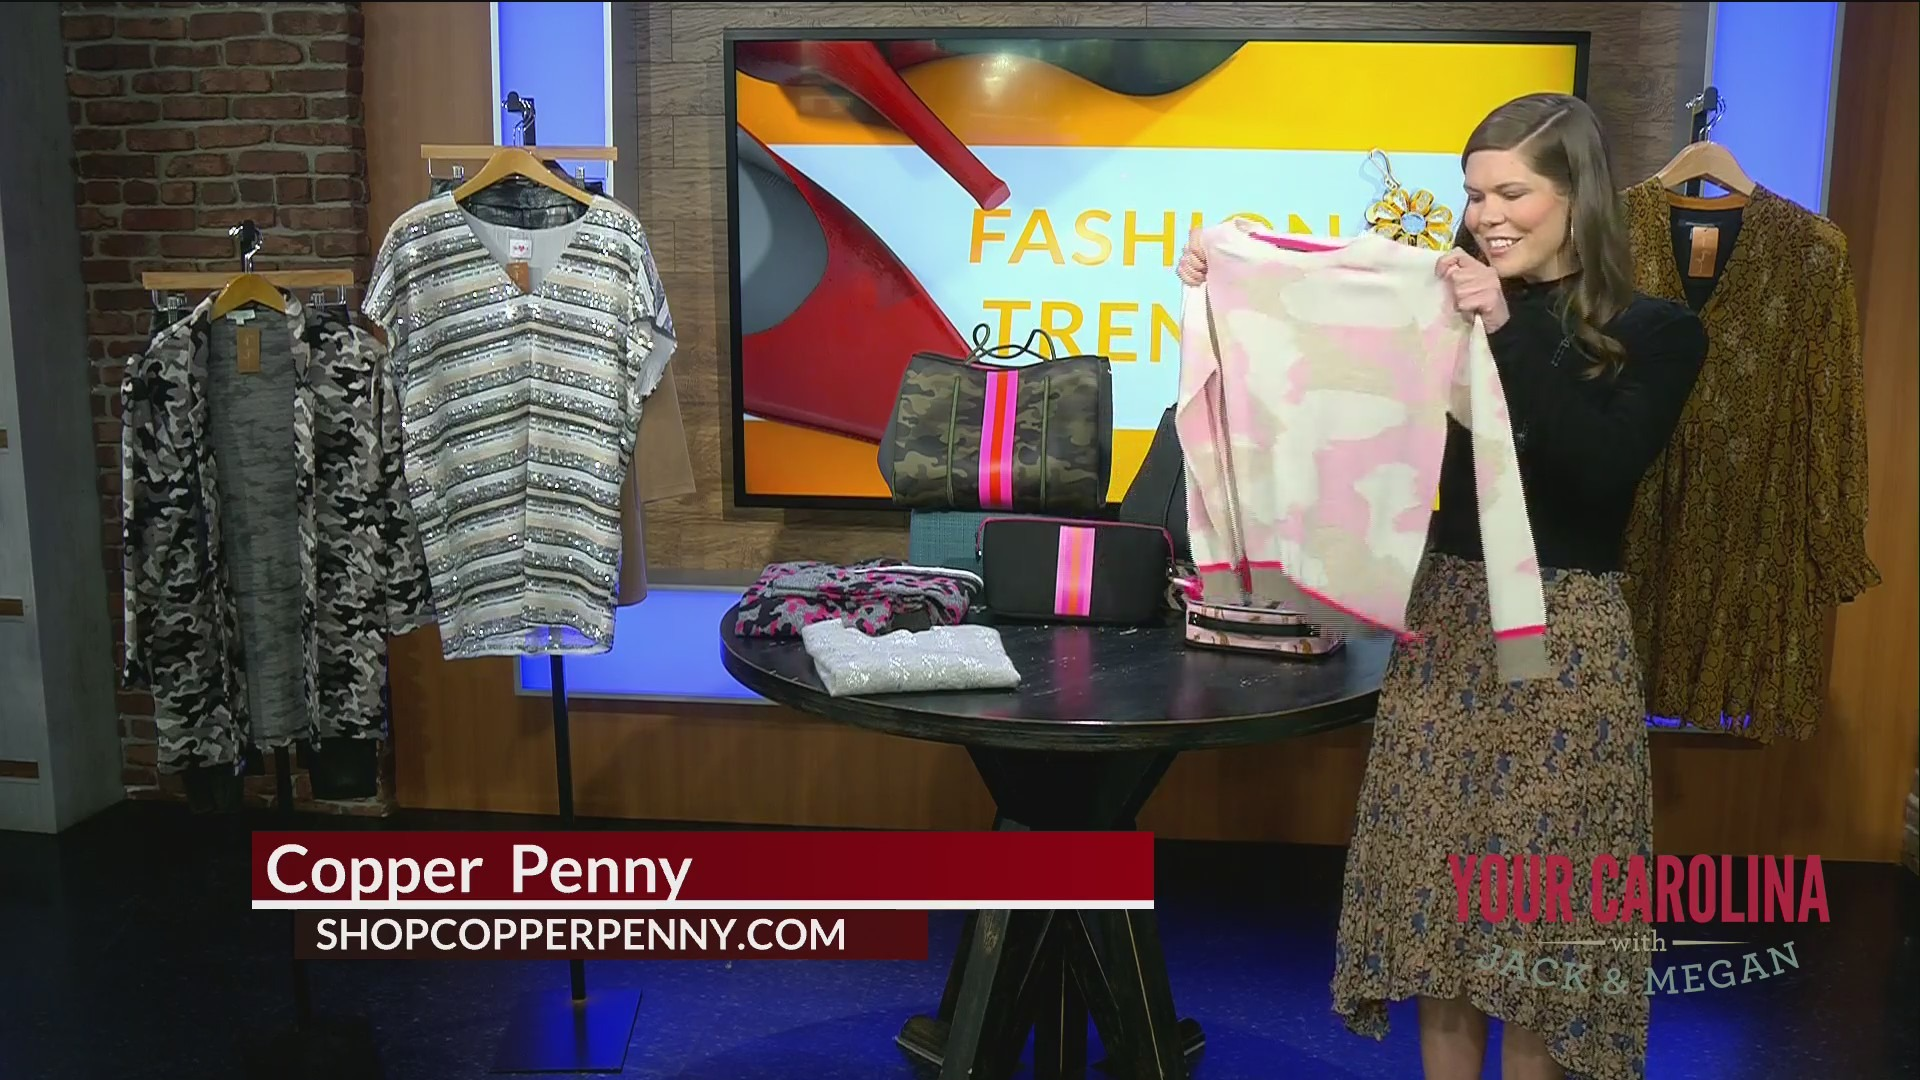 Holiday Fashion Trends From Copper Penny